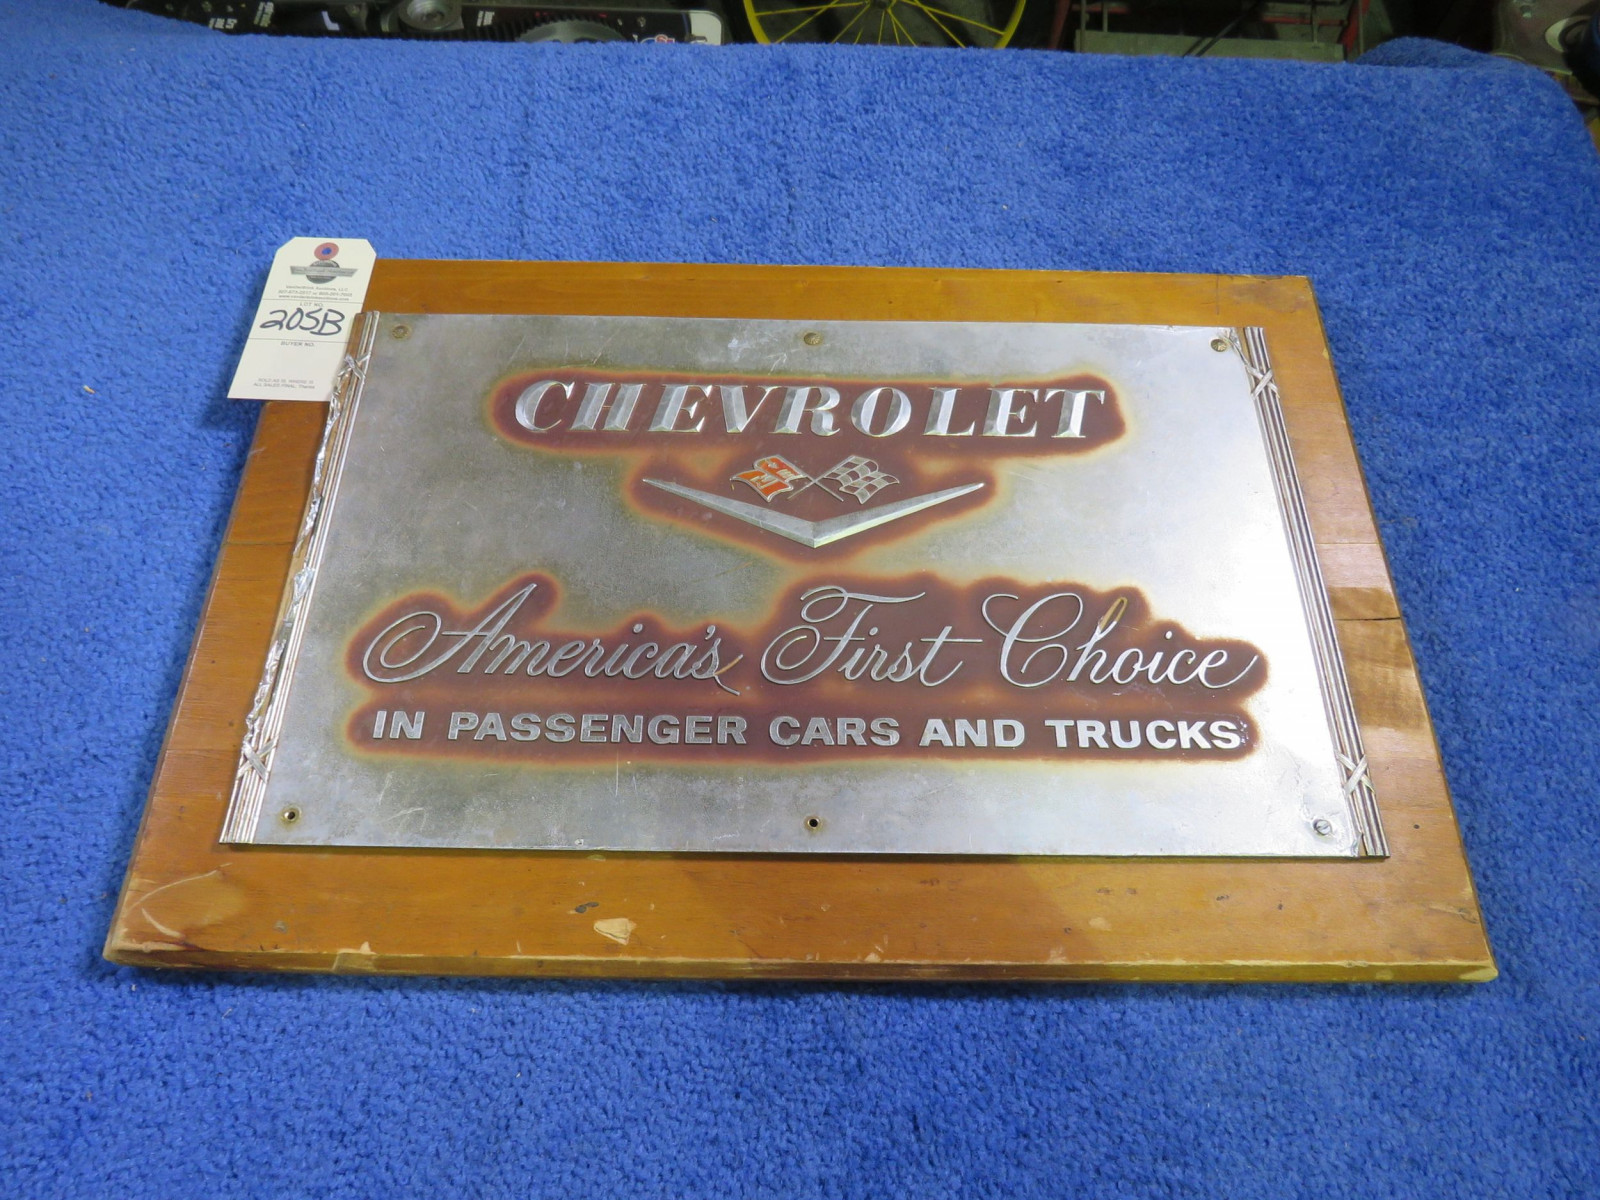 Chevrolet Dealer Tin Sign on Wood - Image 1